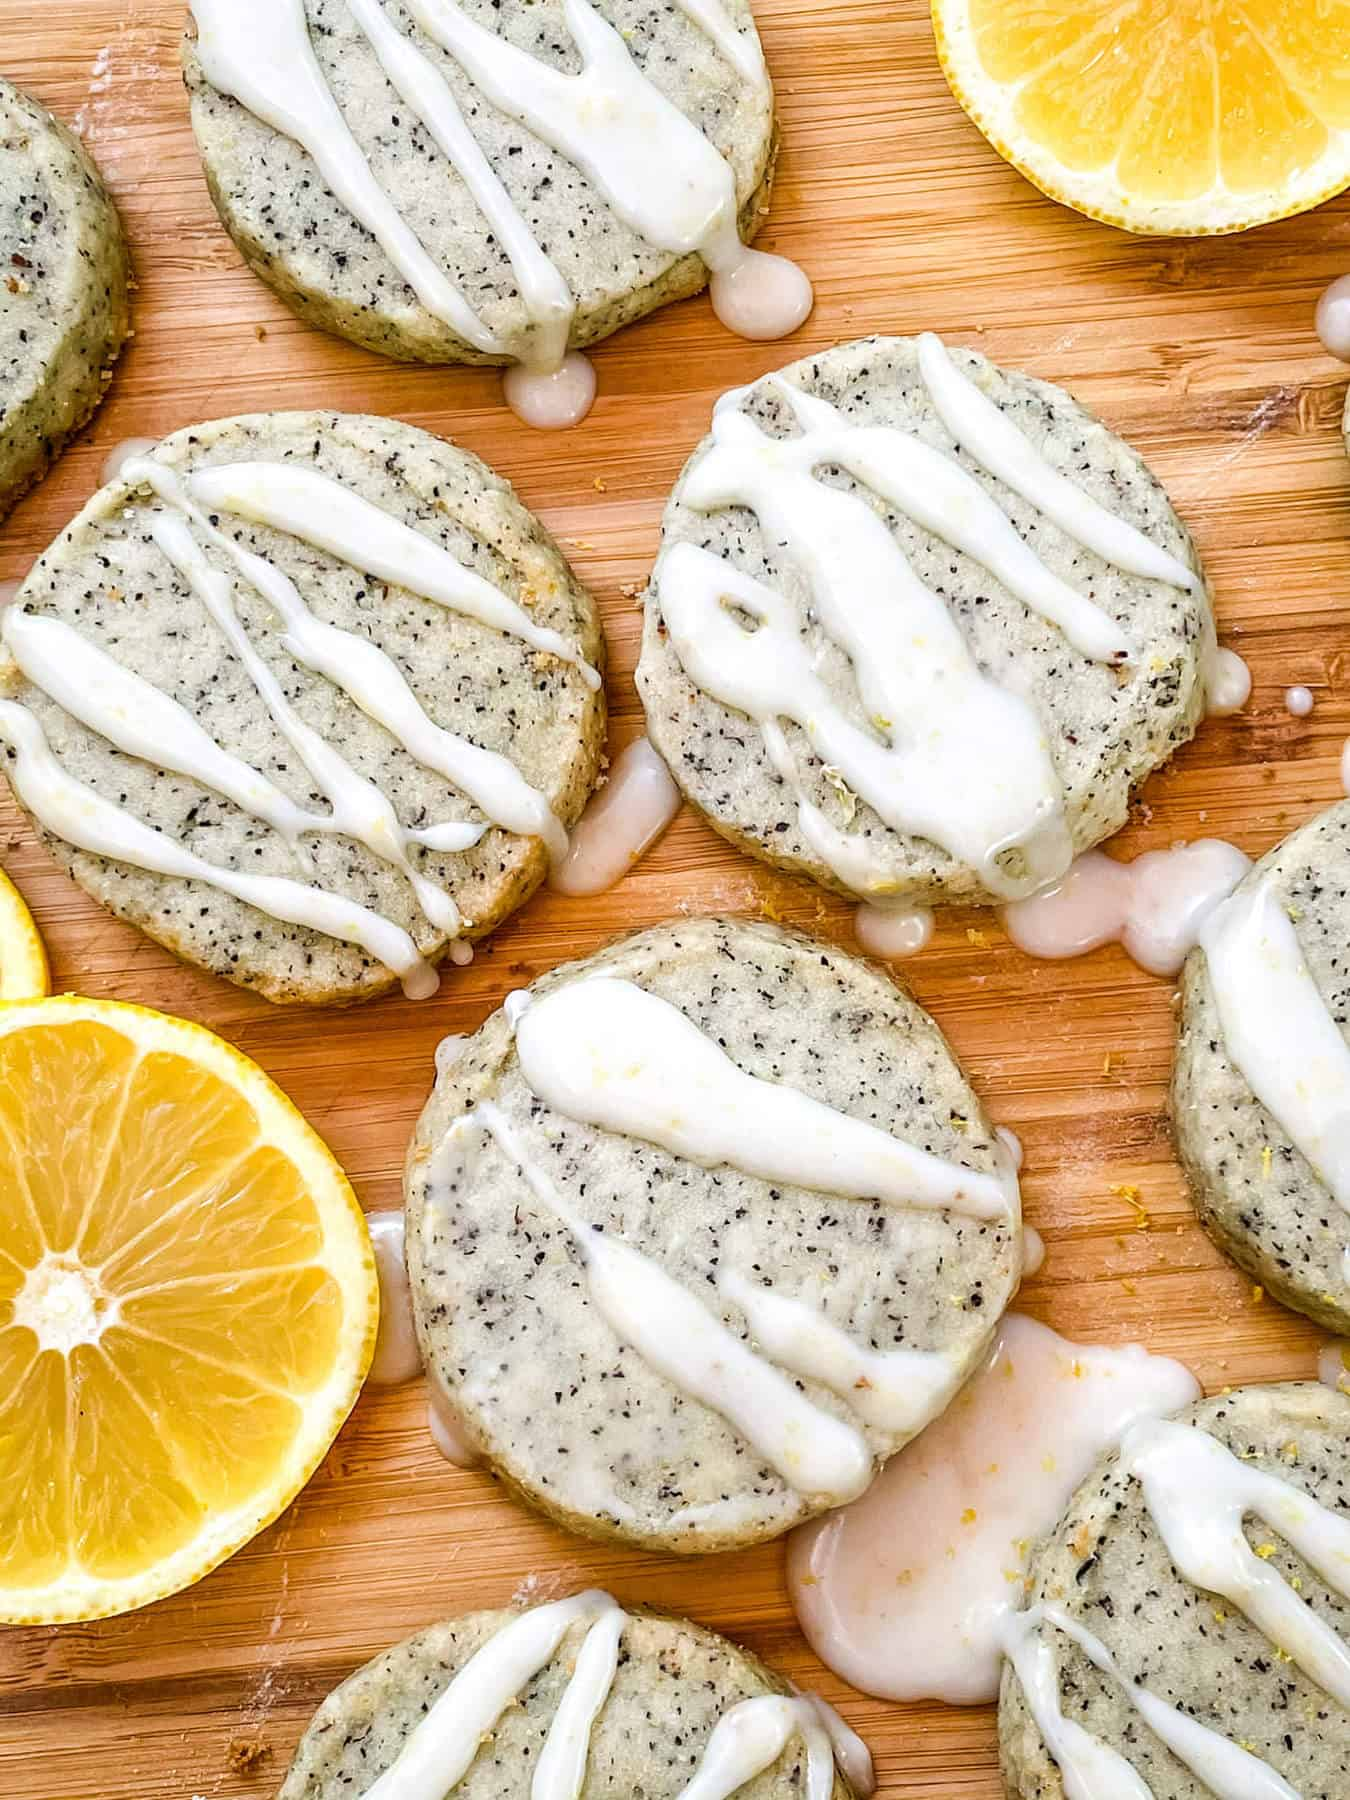 Earl Grey Shortbread Cookies spread out on a cutting board with drizzled glaze and lemon slices